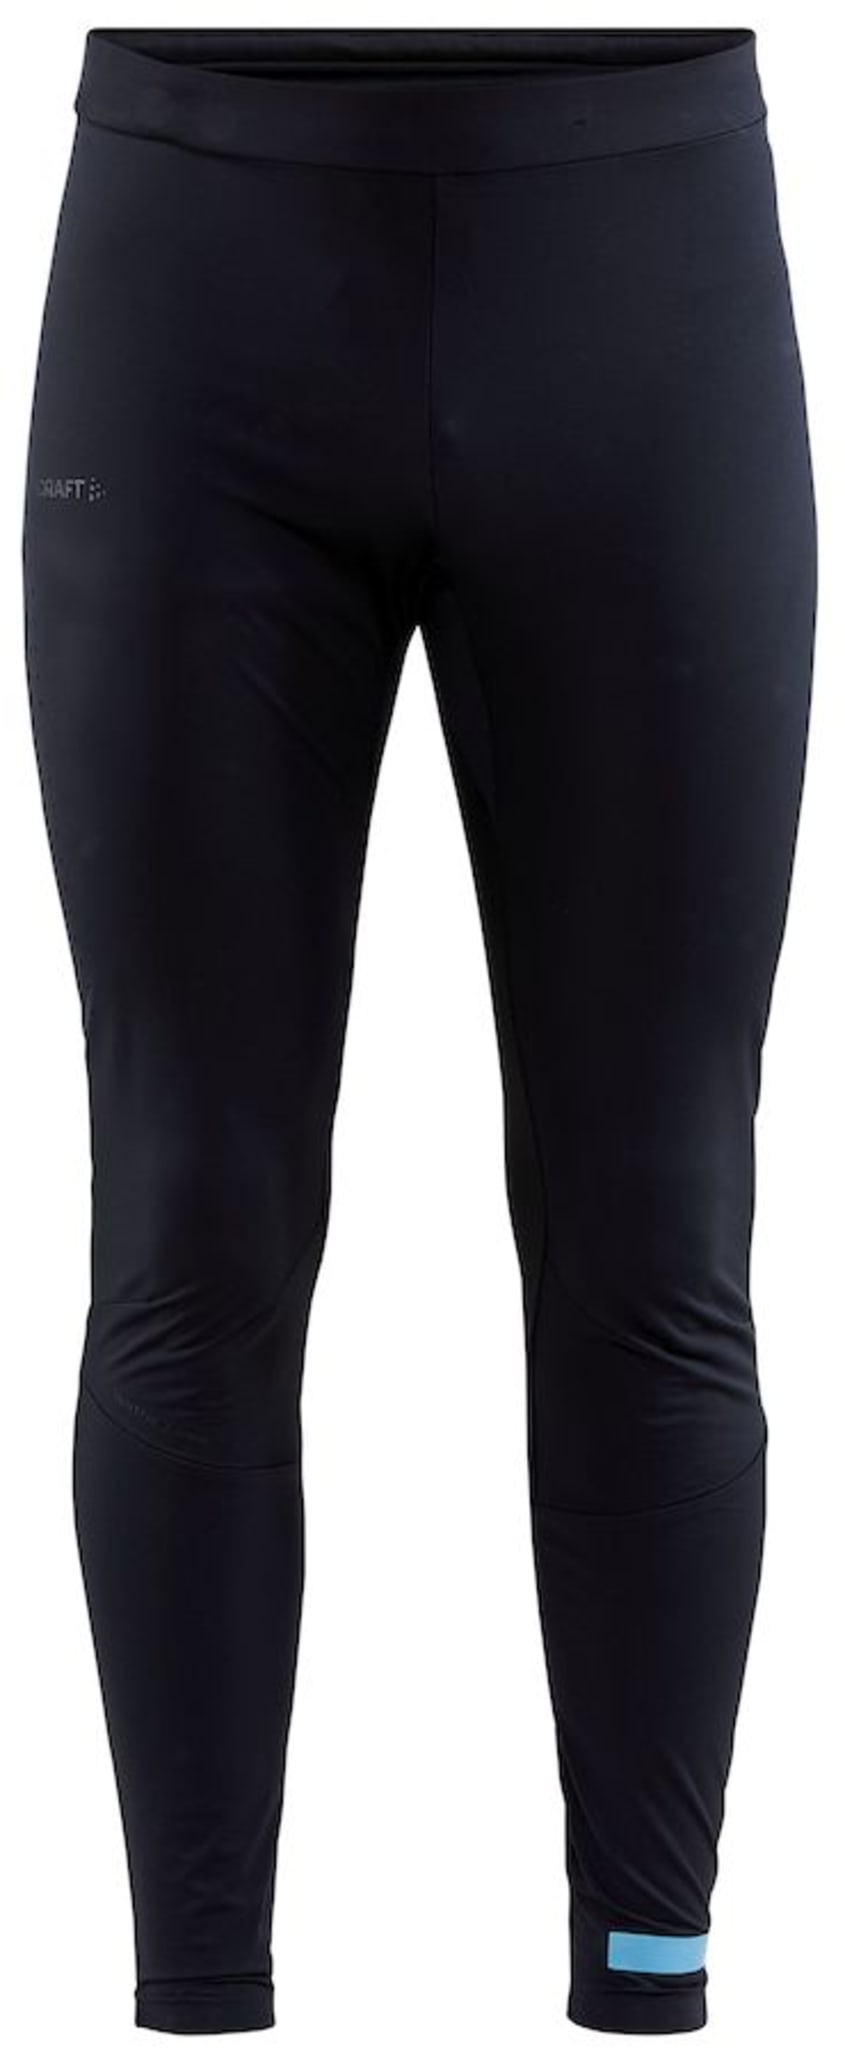 Pro Velocity Wind Tights M